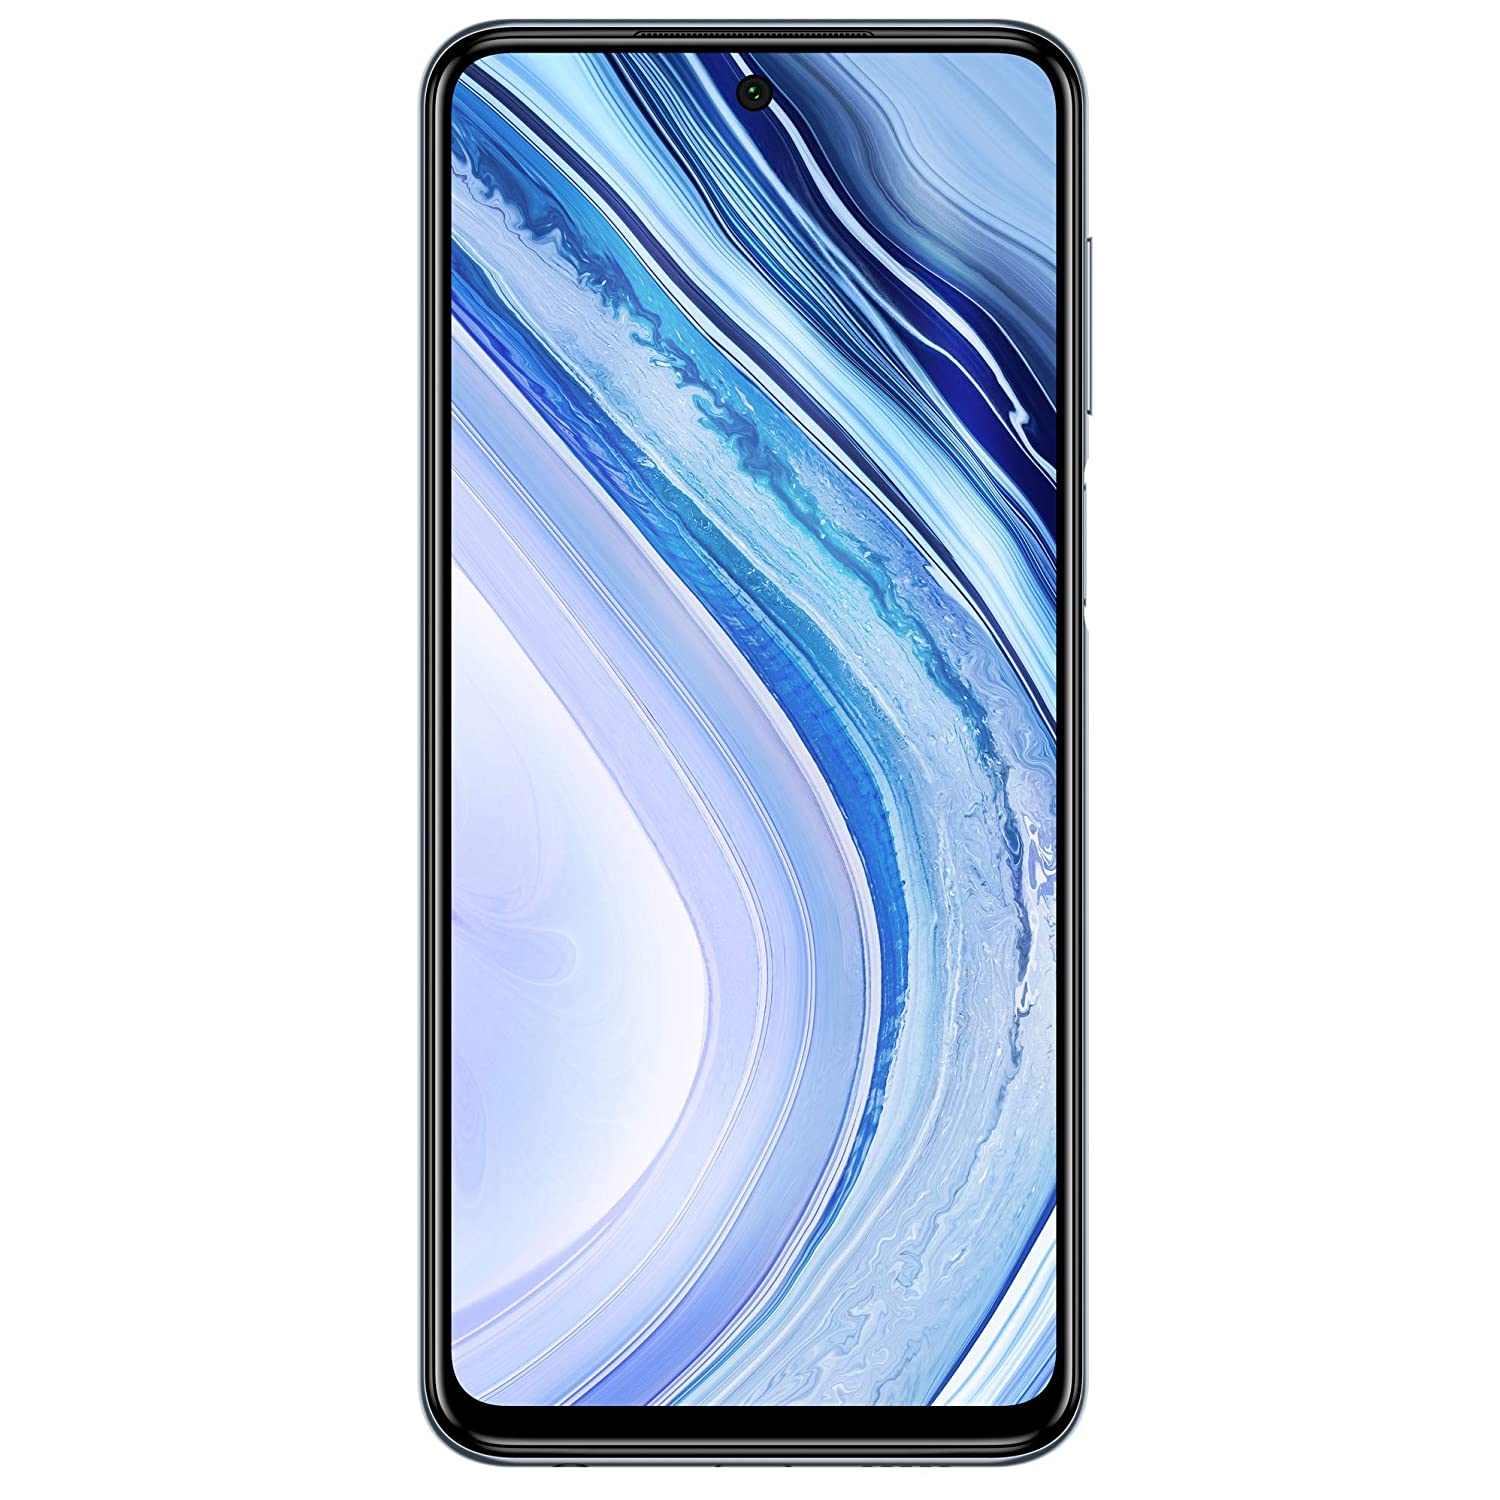 Redmi Note 9 Pro Max (Interstellar Black, 6GB RAM, 64GB Storage) - 64MP Quad Camera & Latest 8nm Snapdragon 720G & Alexa Hands-Free